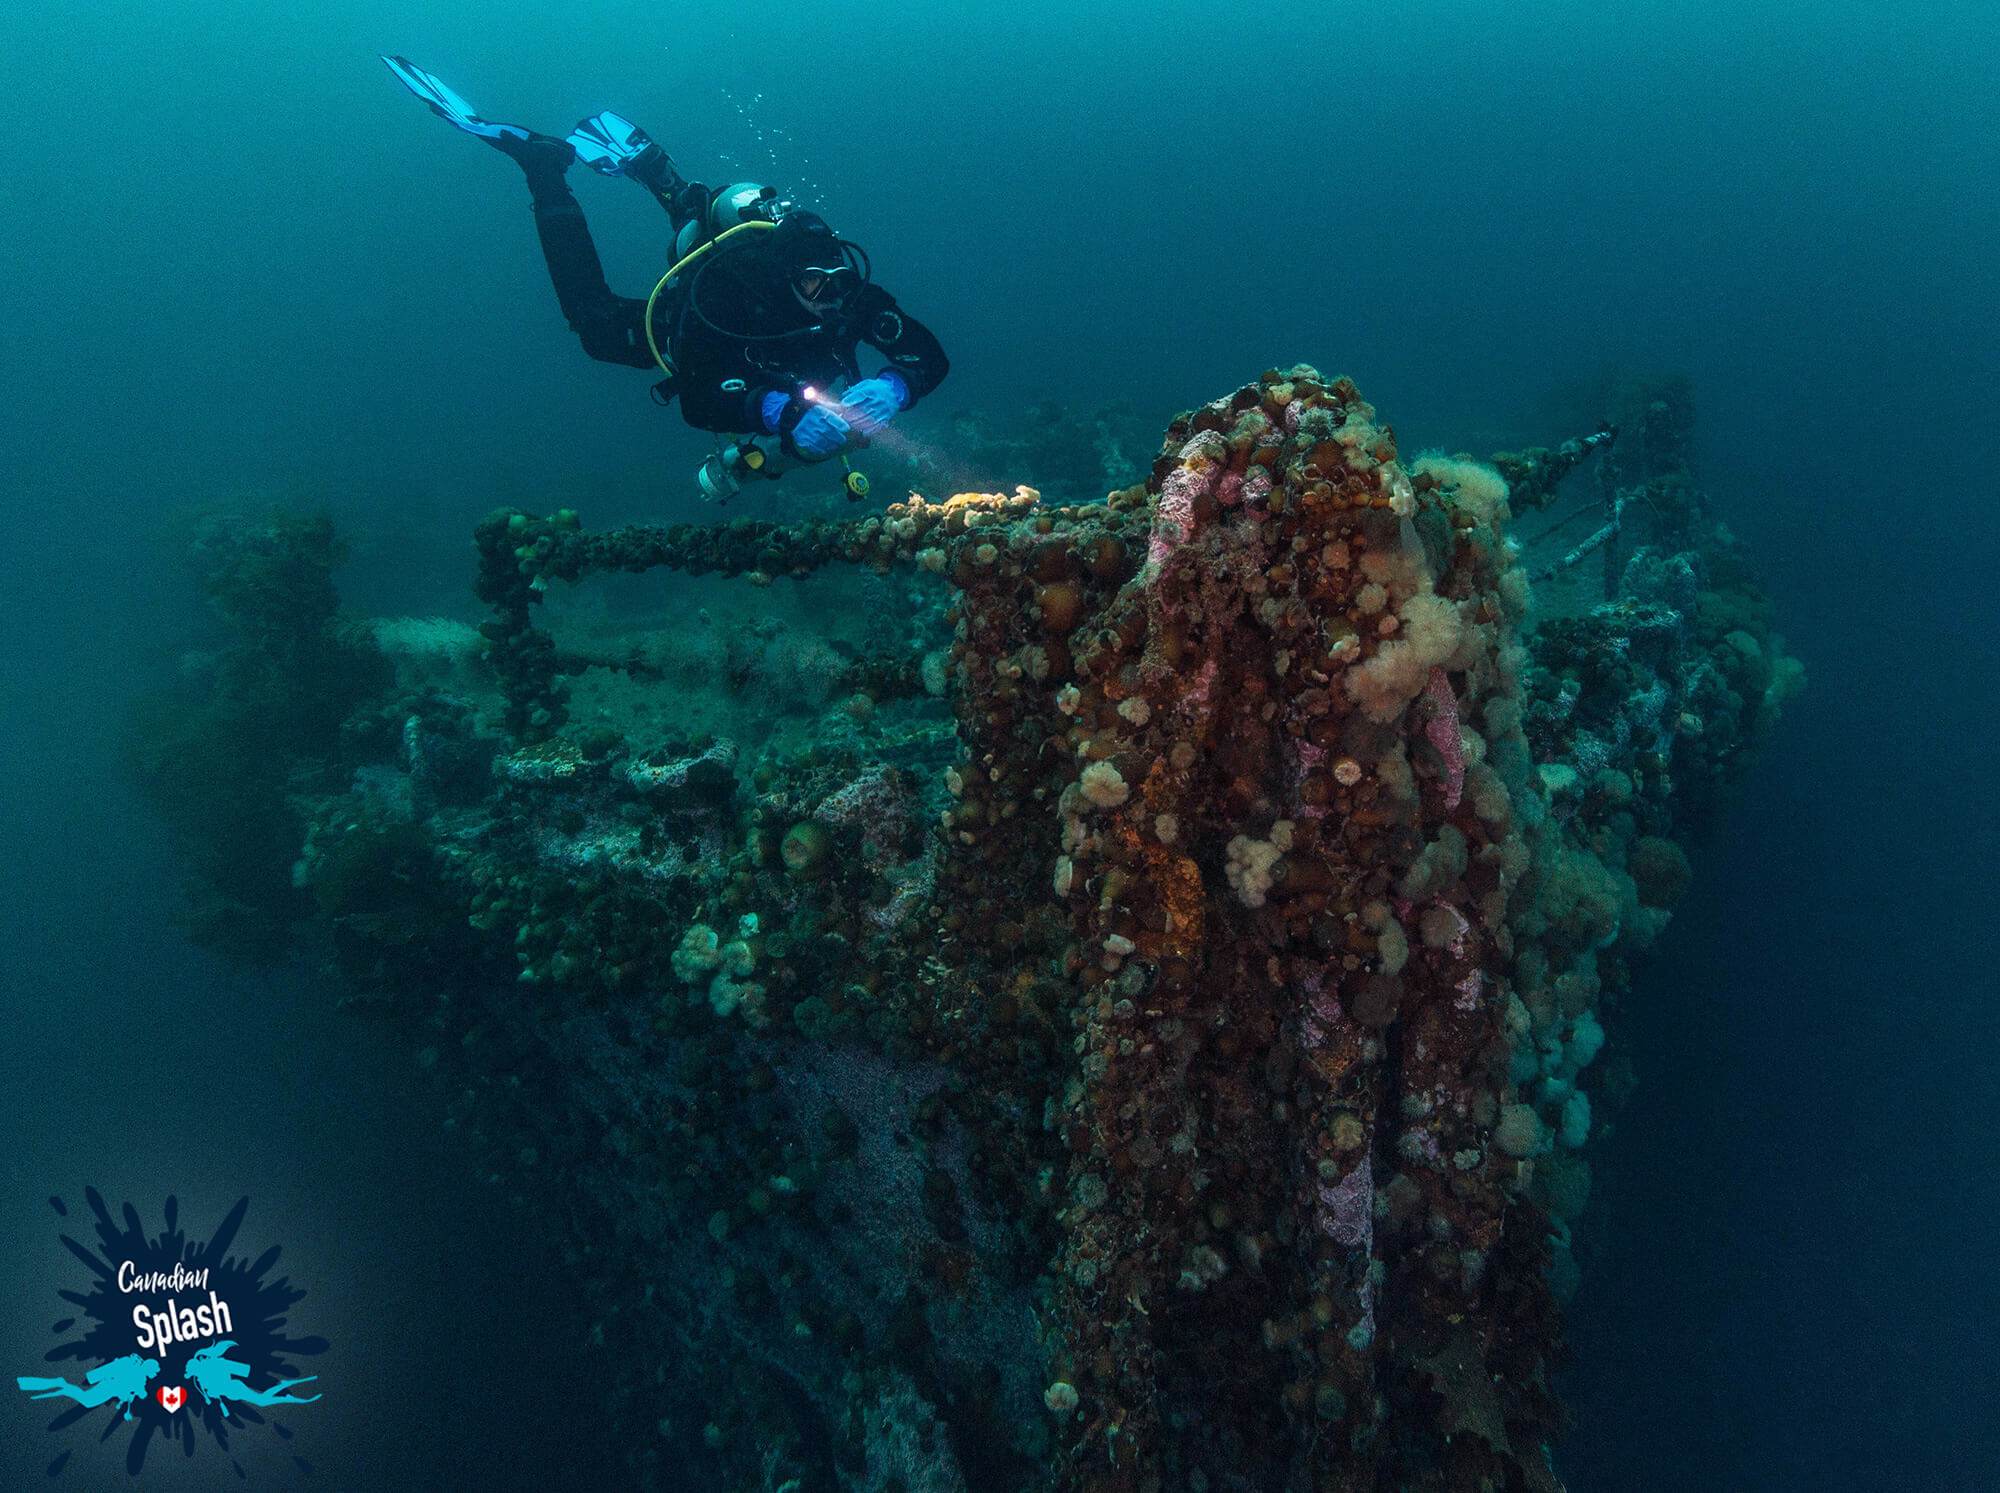 Joey On The Bow Of the PLM Shipwreck on Bell Island, Newfoundland, Canadian Scuba Diving